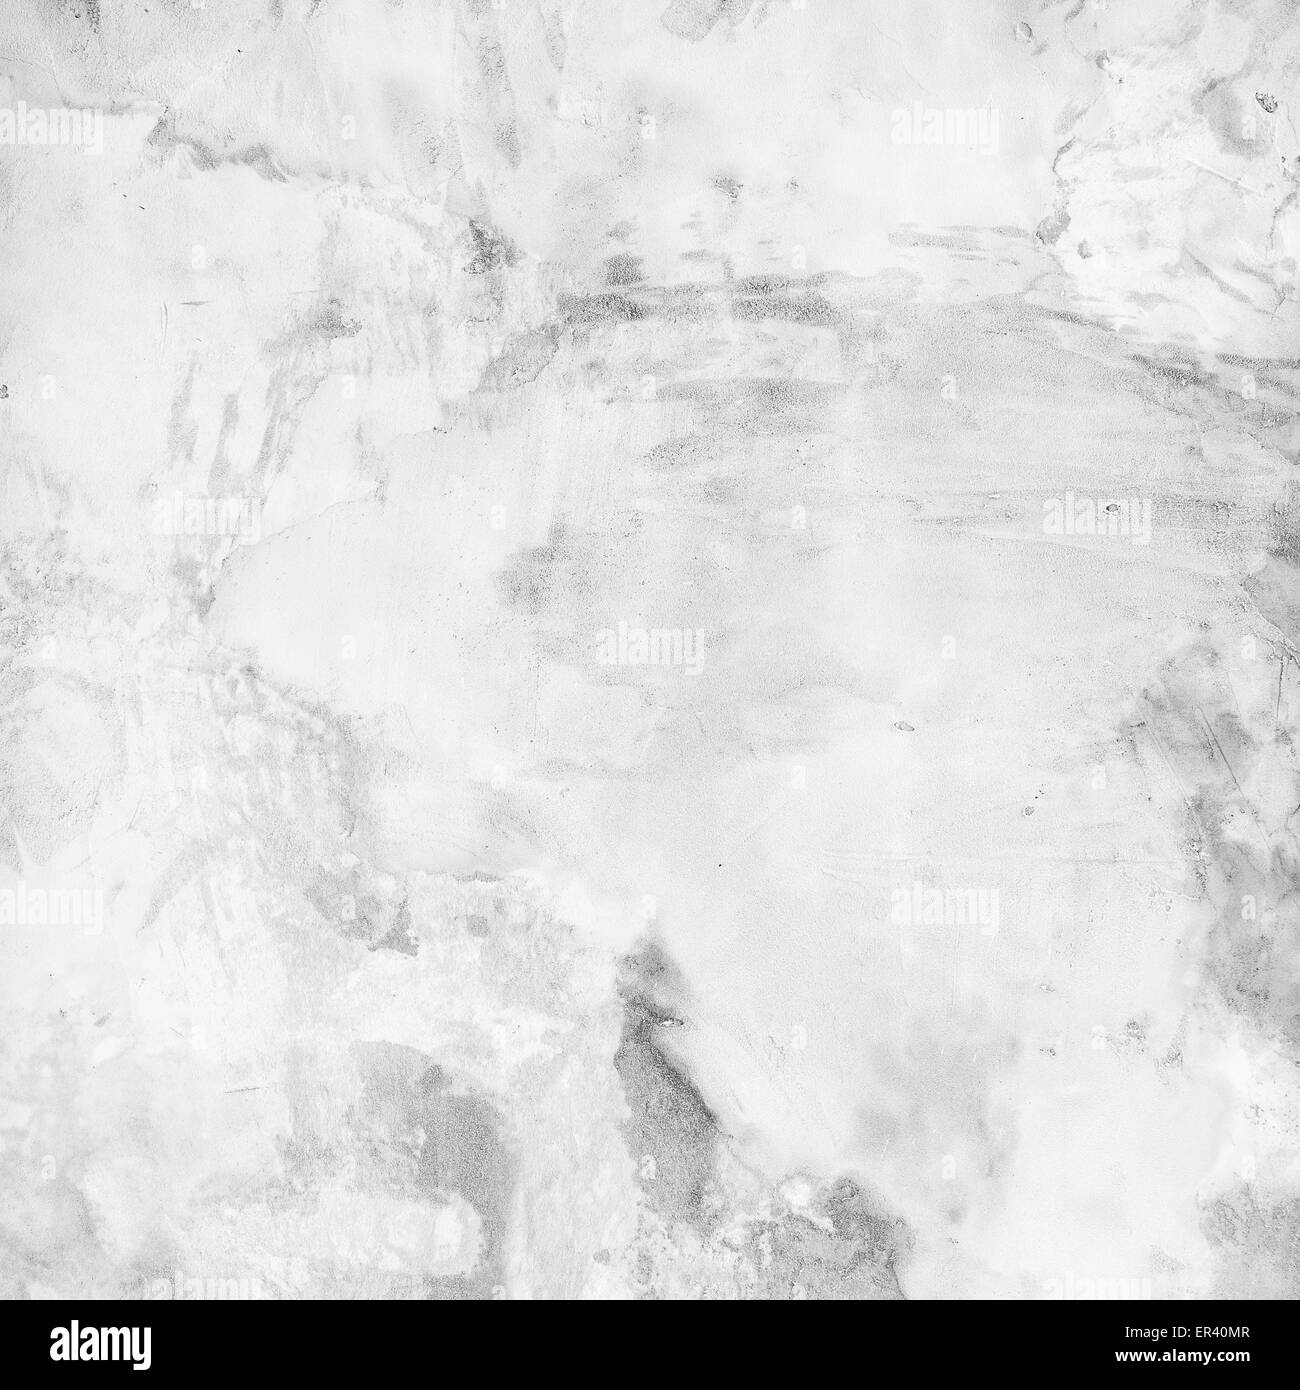 Old Grunge White Wall Texture Background